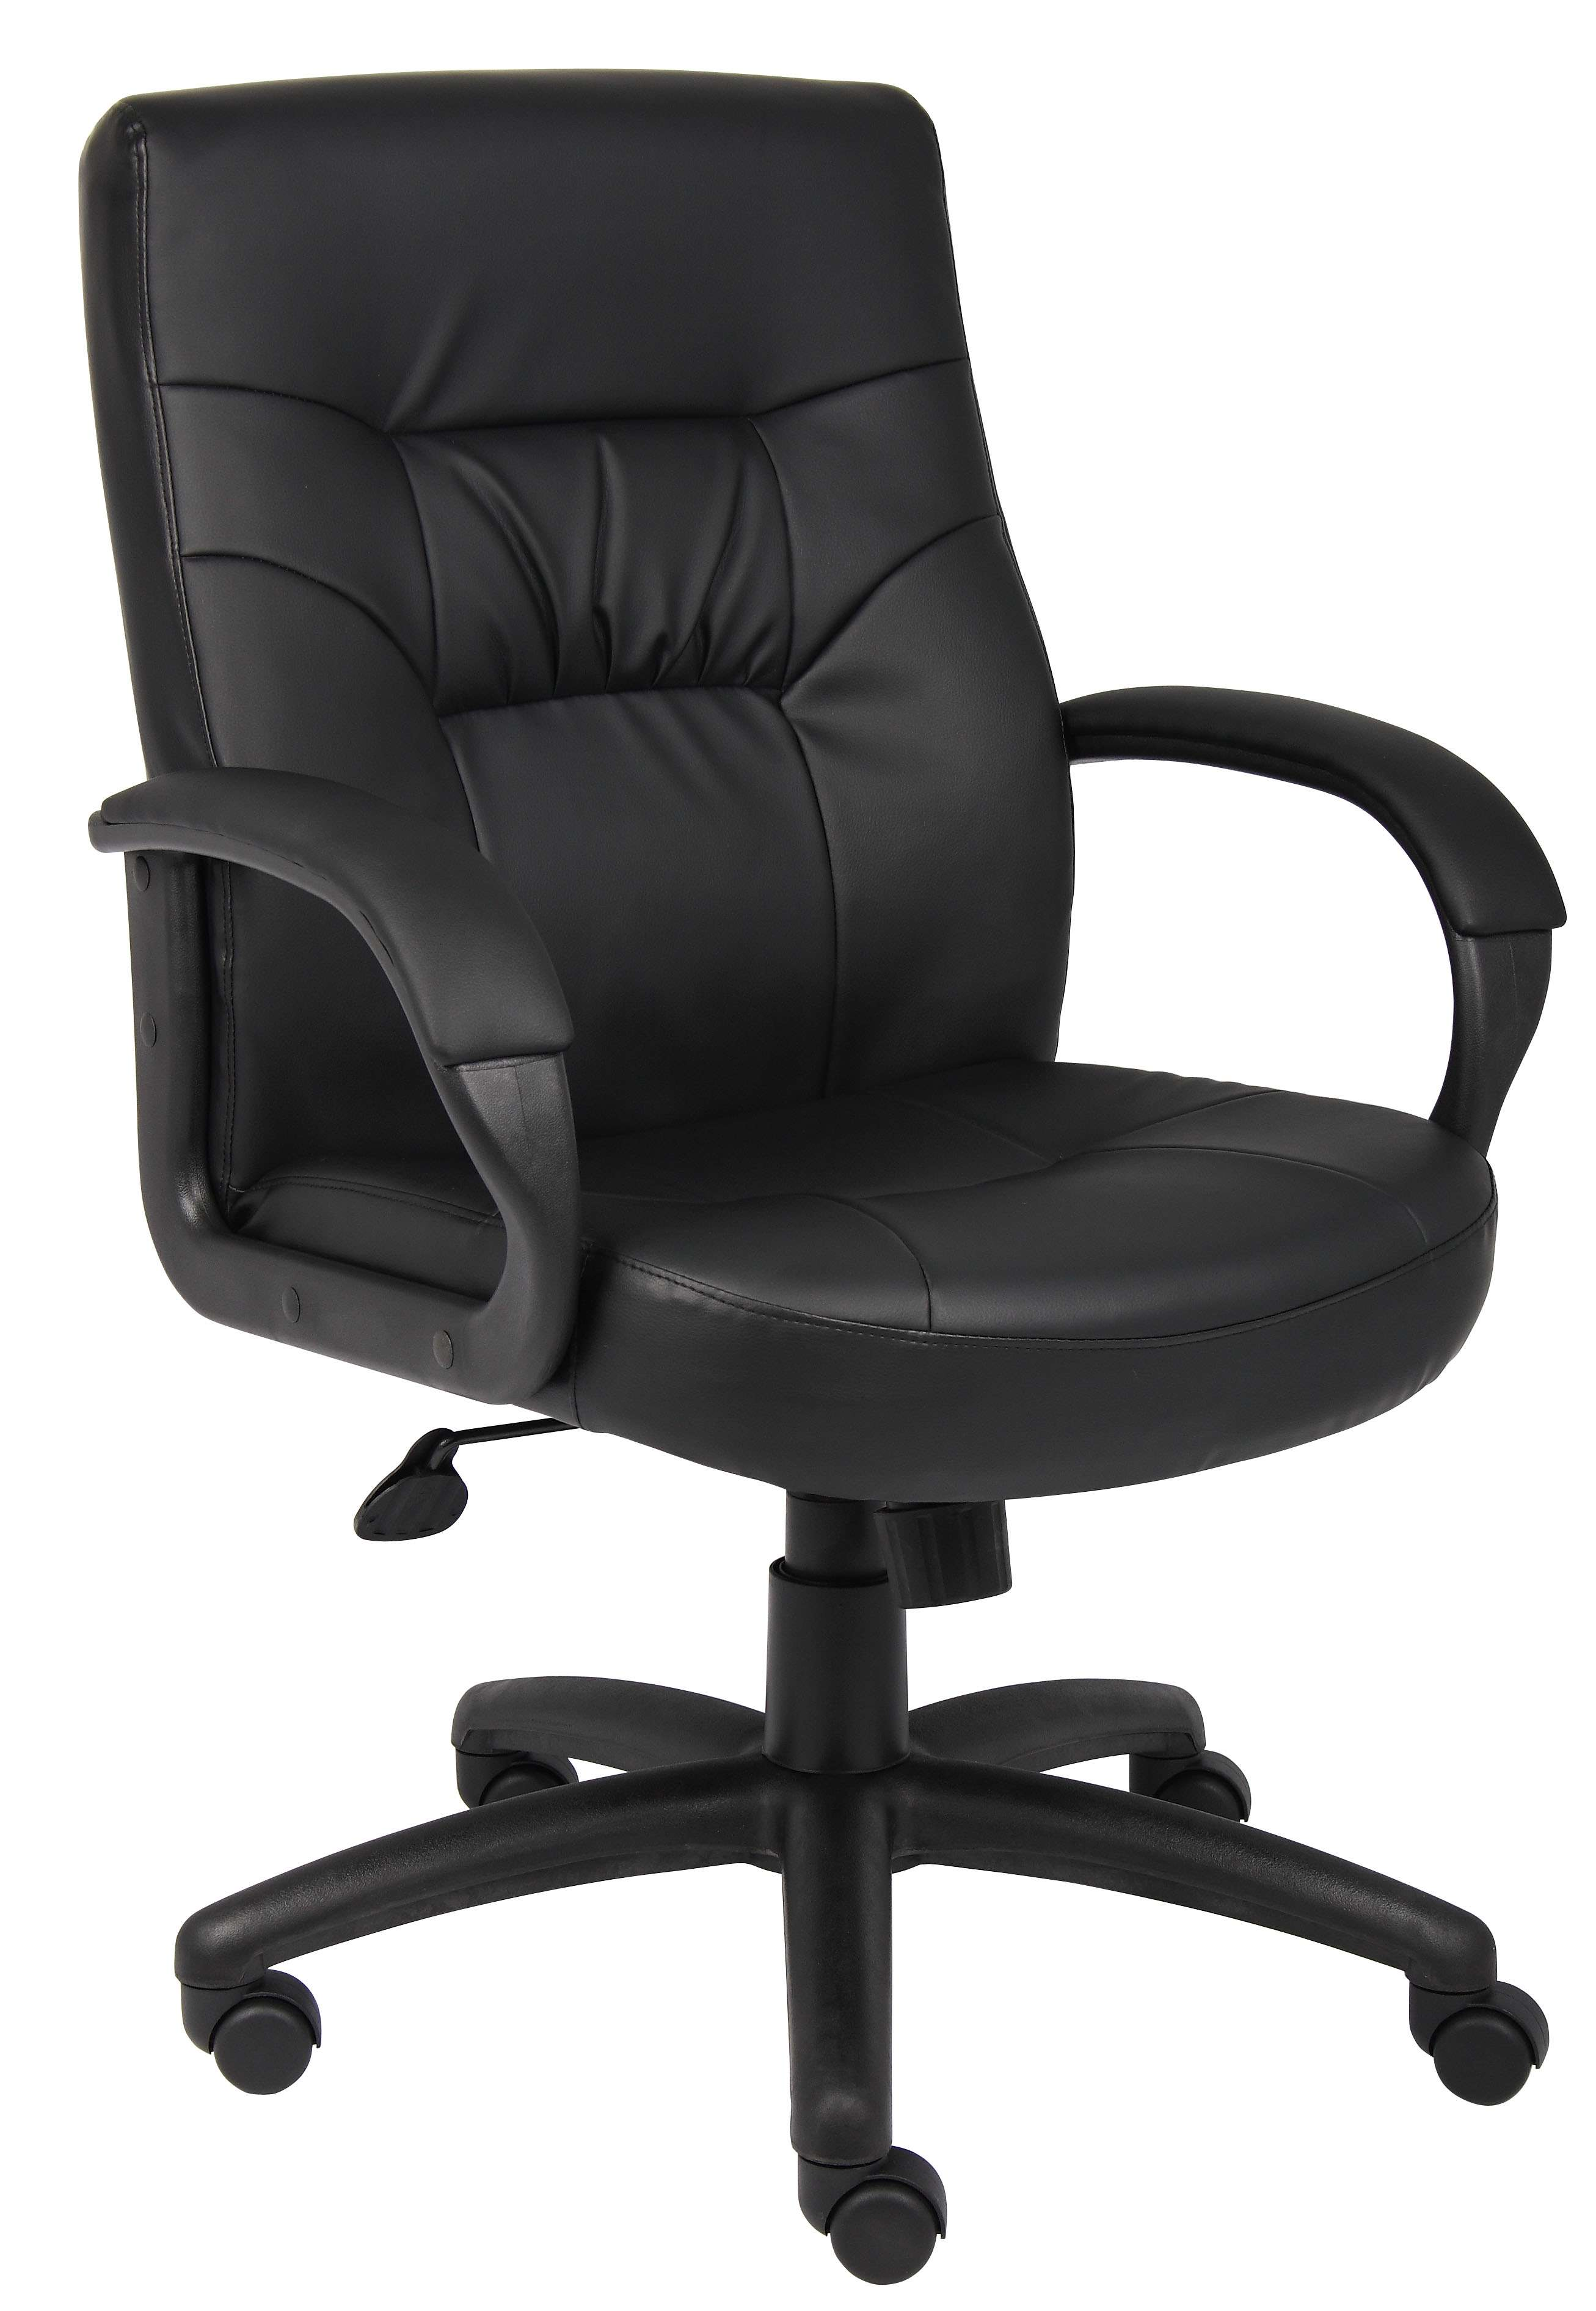 Exceptionnel Black LeatherPlus Mid Back Executive Chair